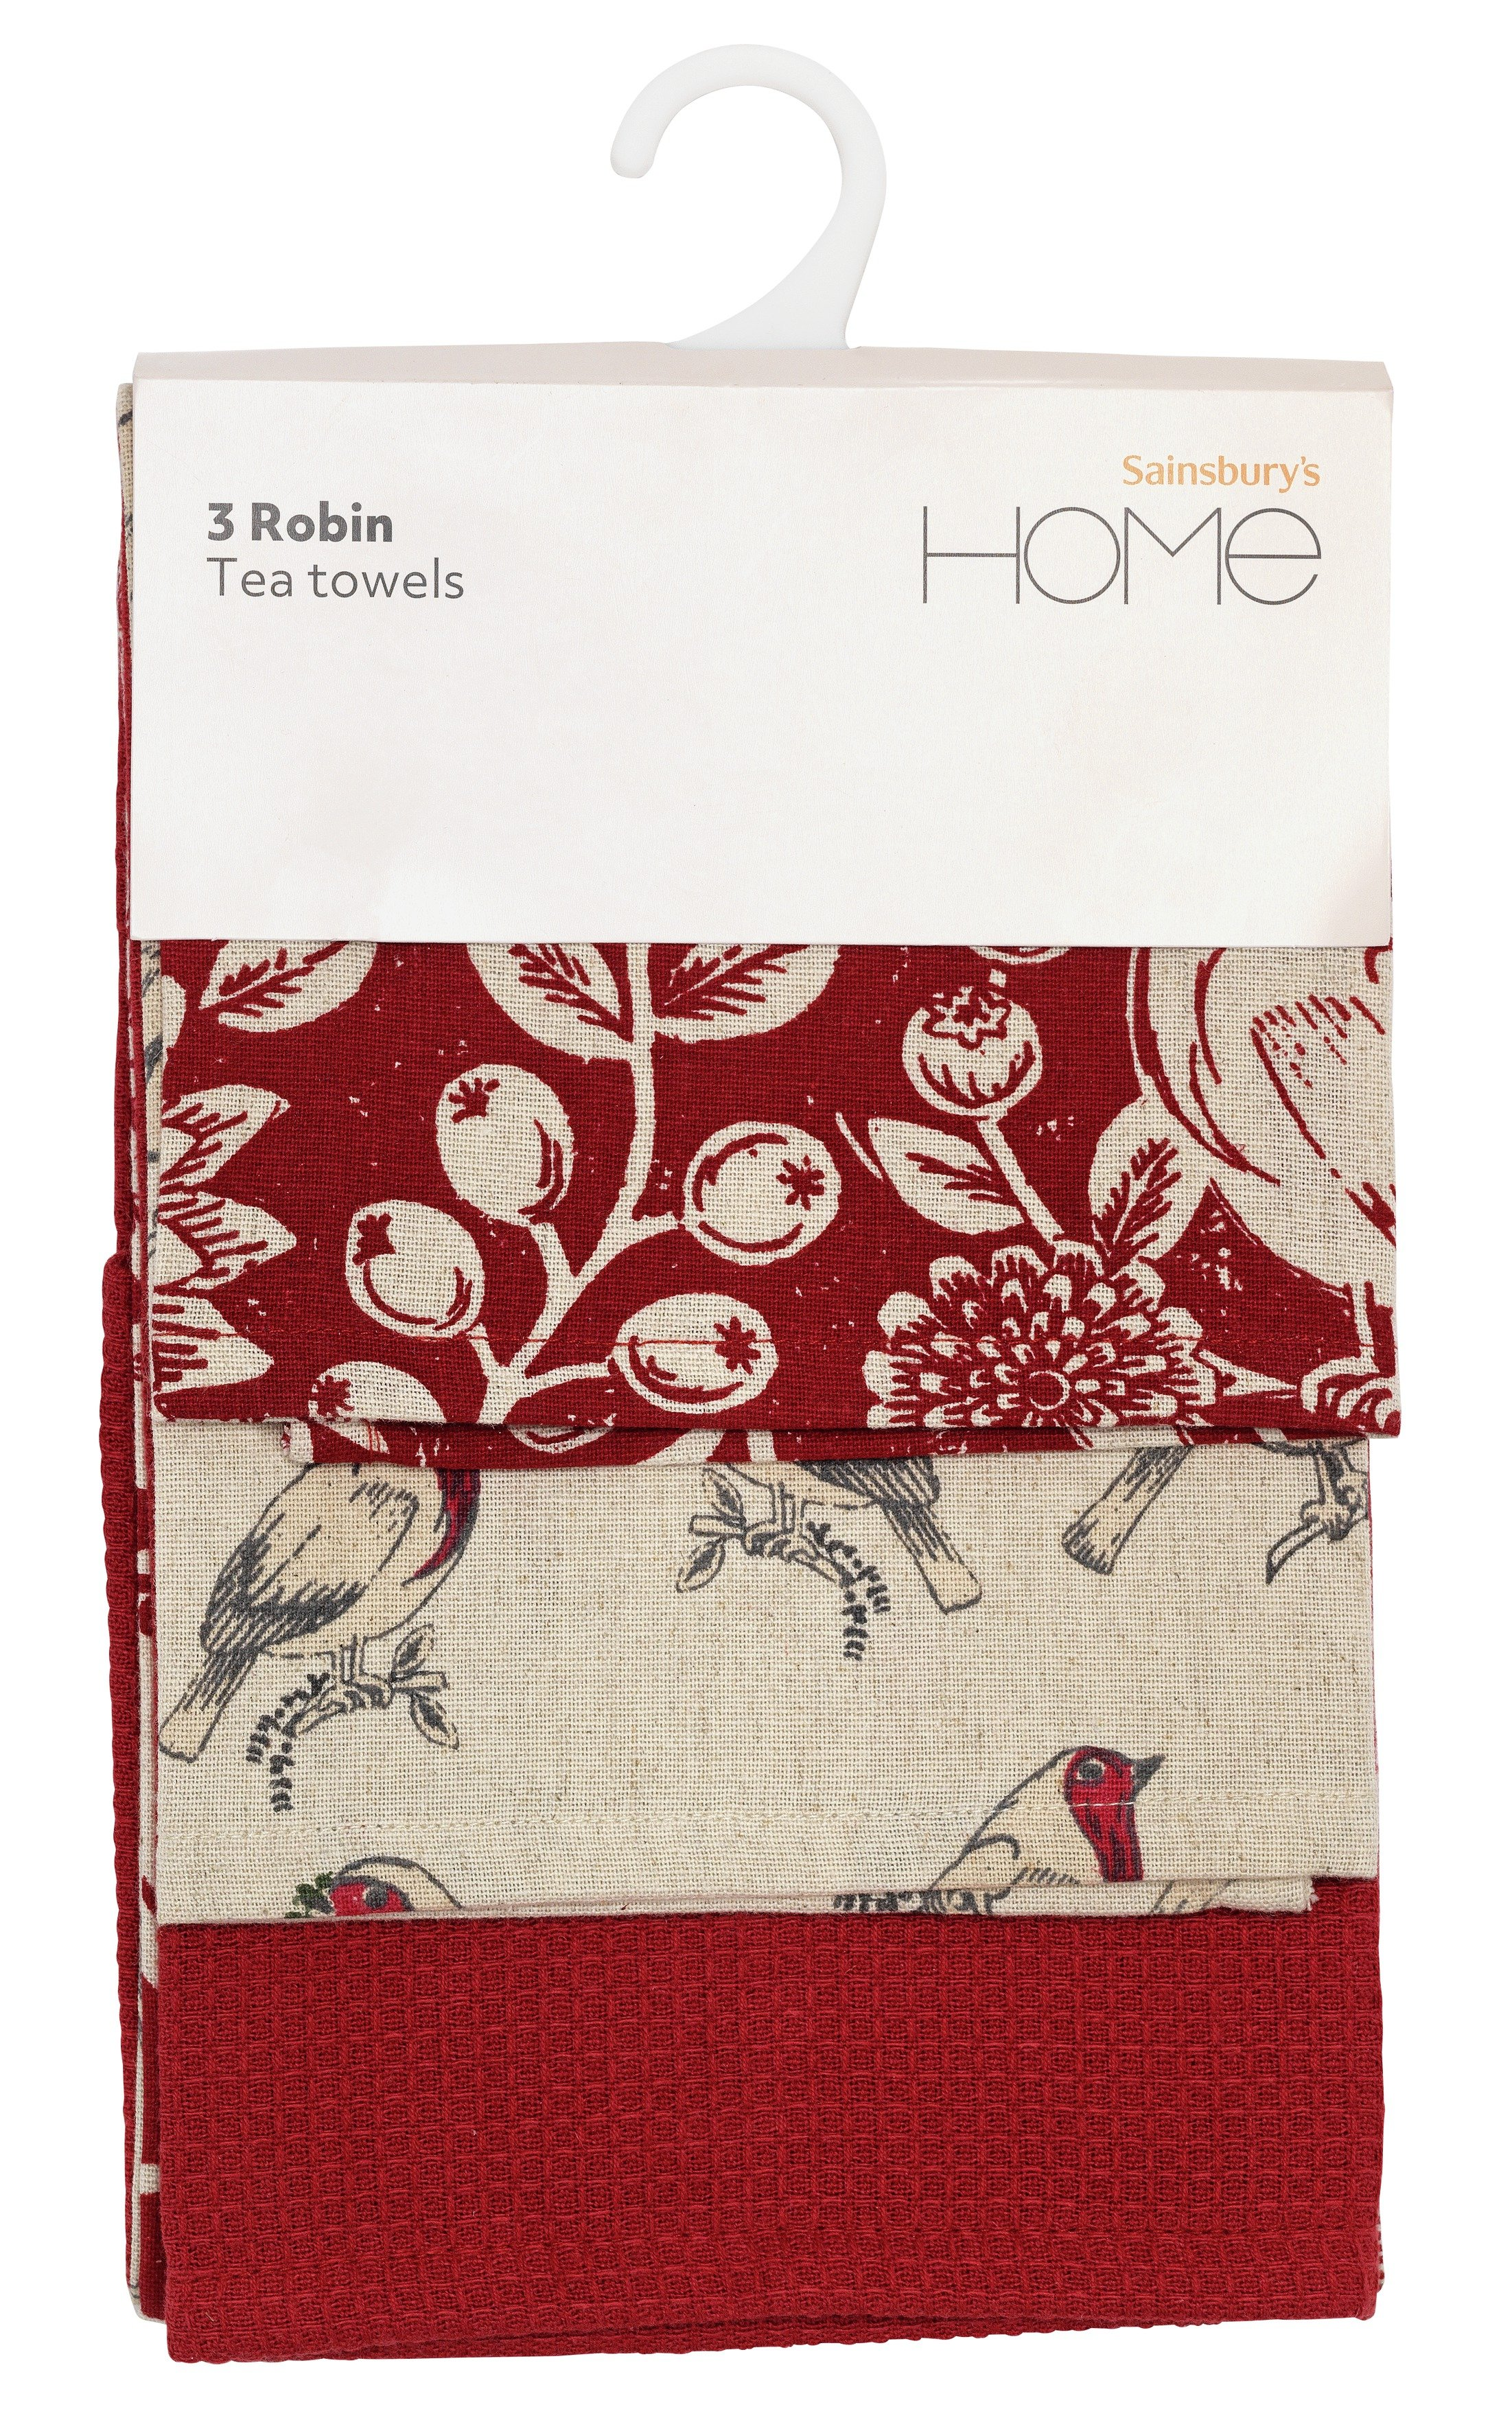 Image of Sainsbury's Home Pack of 3 Robin Tea Towels